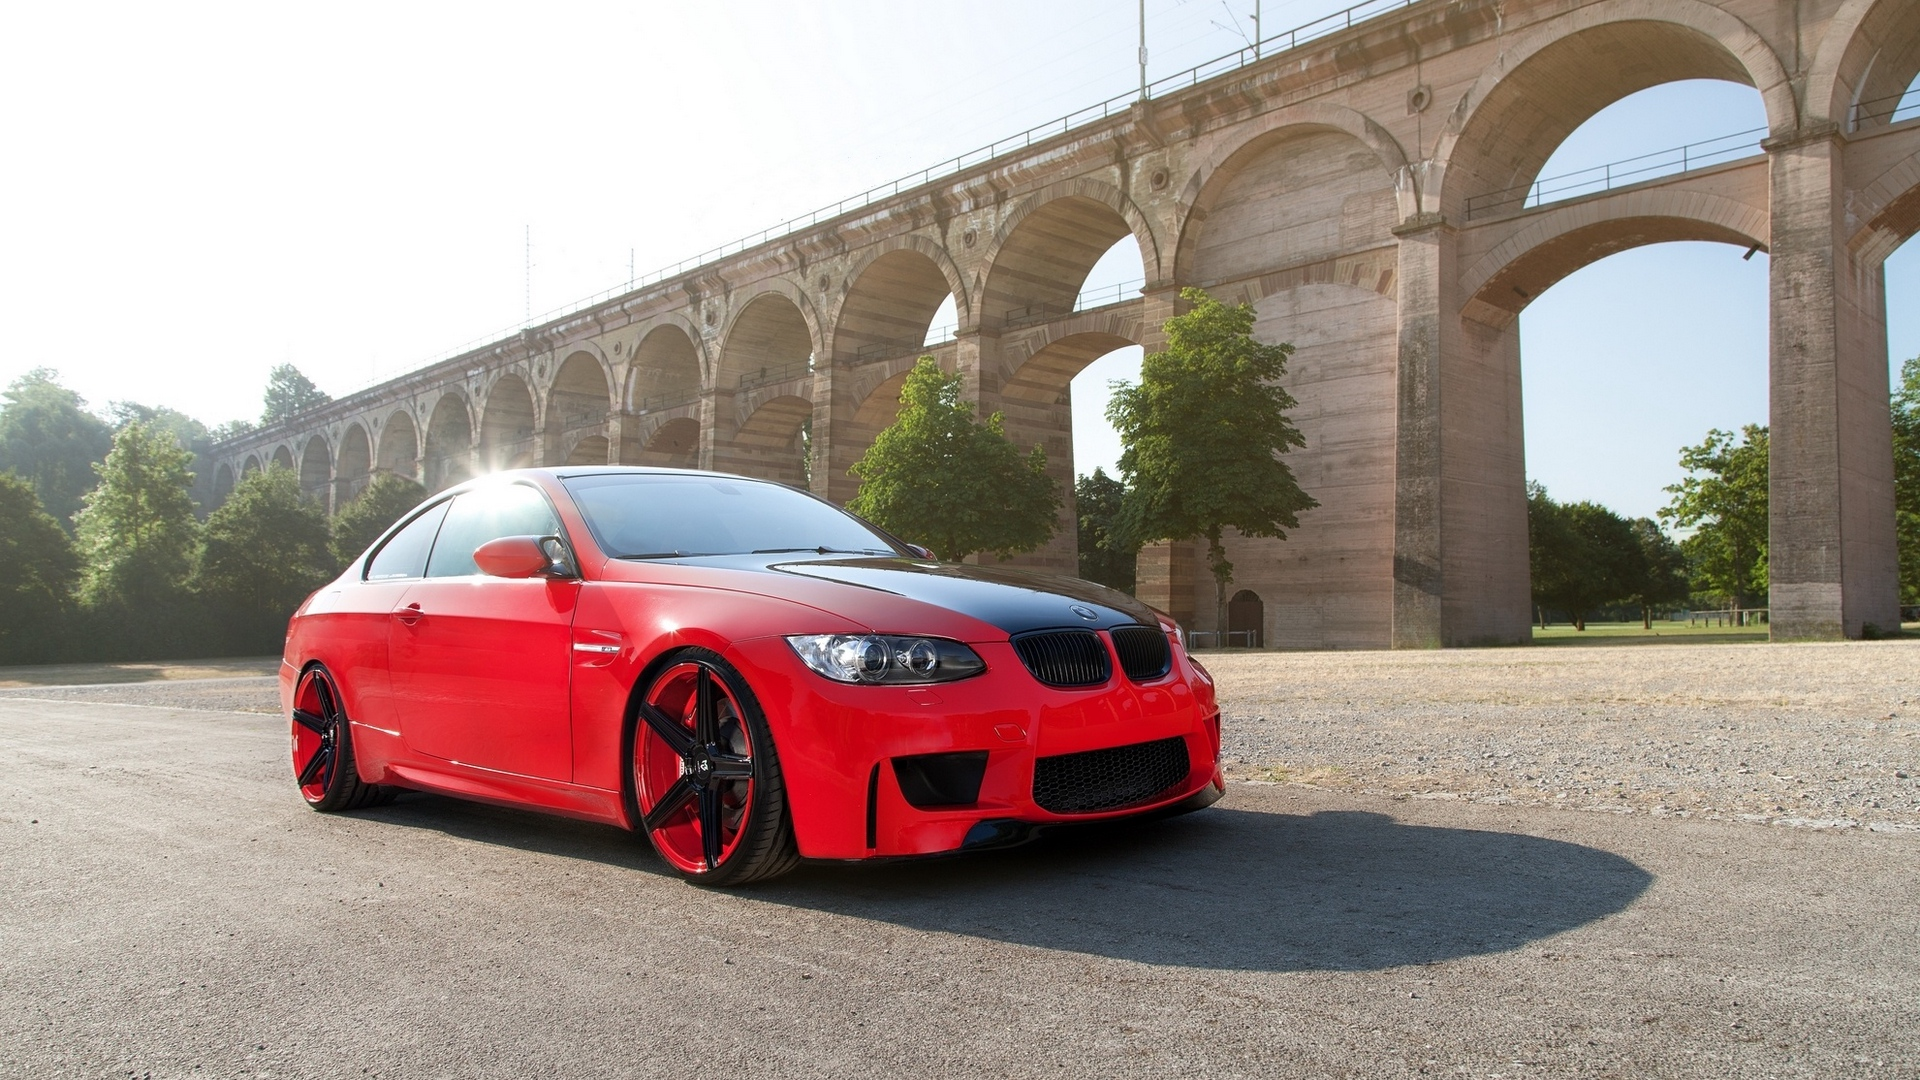 cable car,bridge,red river,and,pinko,nosepiece,automobile,cars,scarlet,e92,bmw,m3,car,railroad car,ruby,bridge deck,red,redness